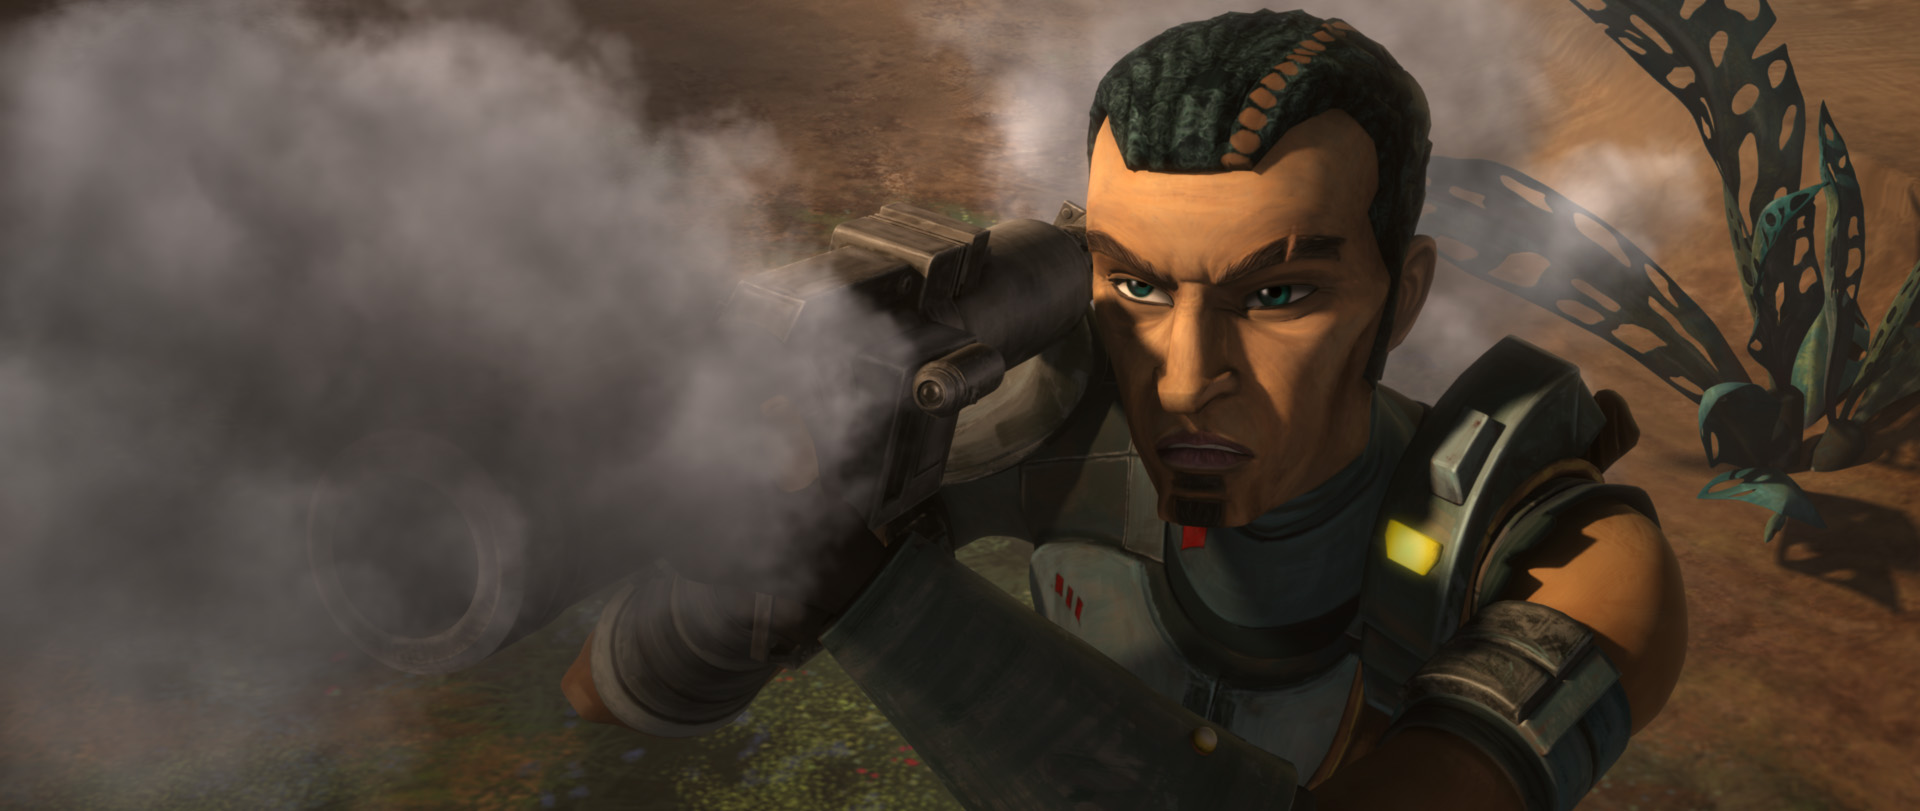 10 Things You Should Know About Saw Gerrera from The Clone